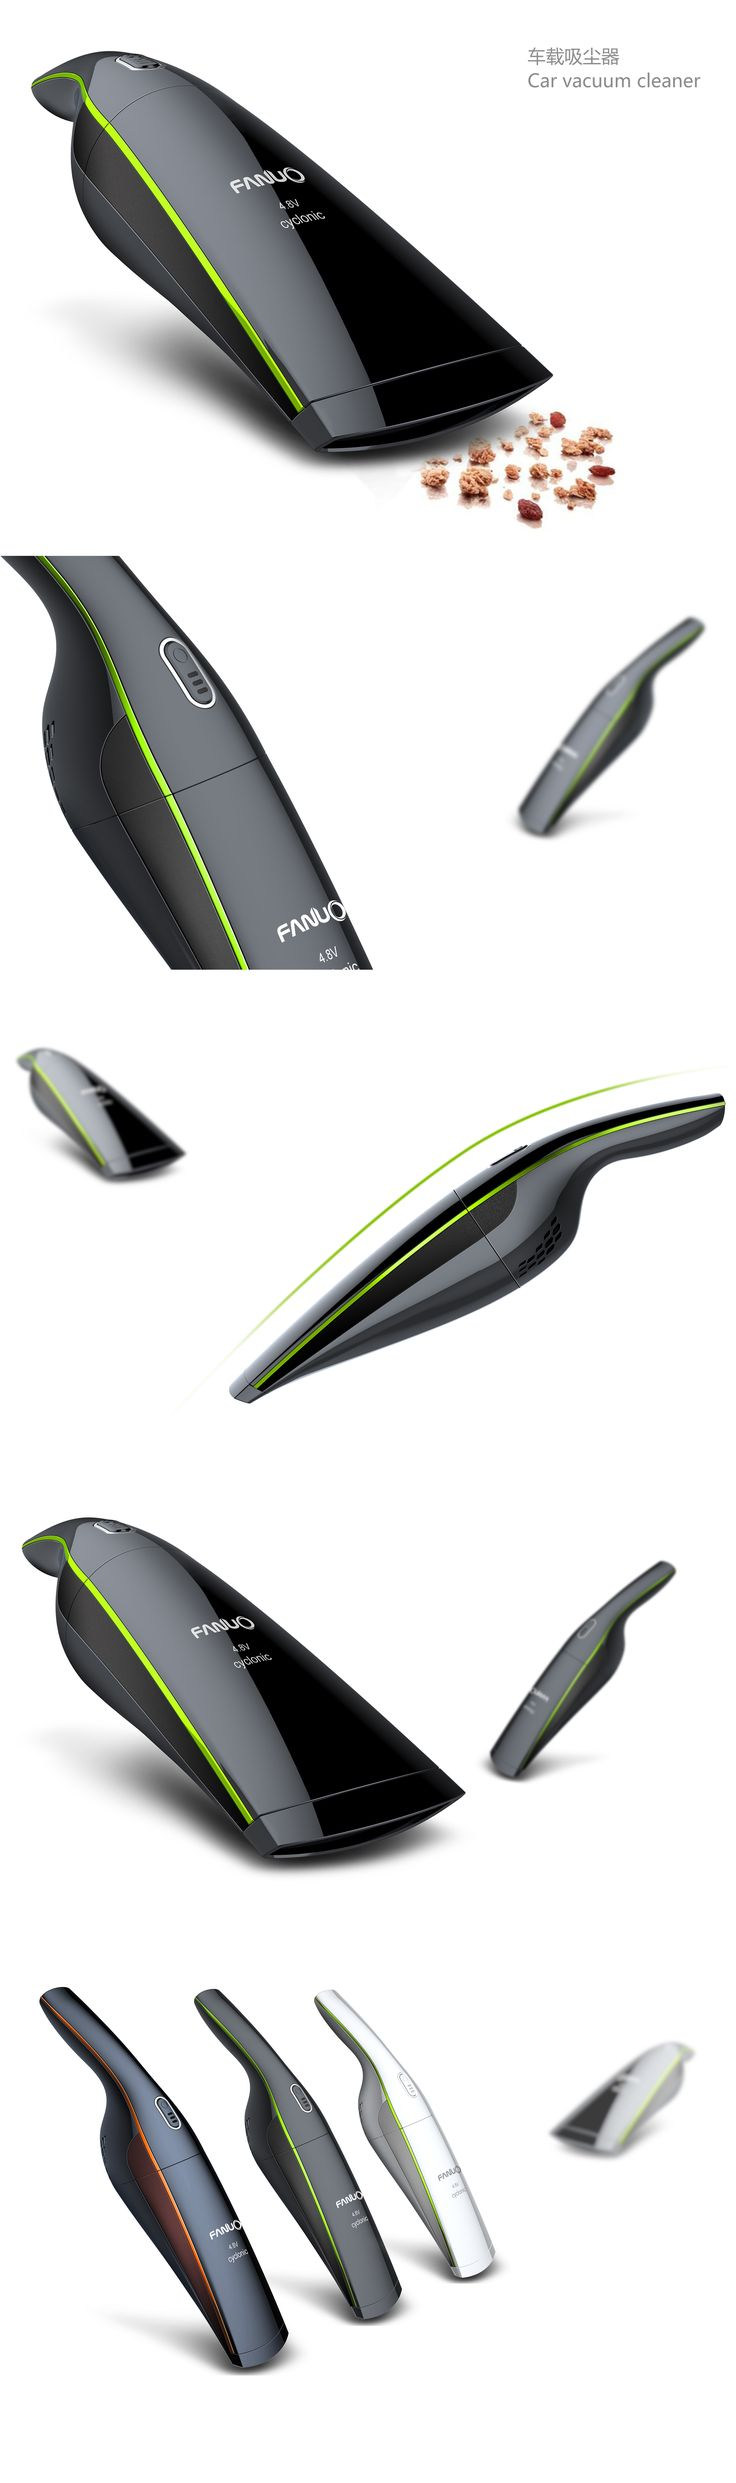 Car vacuum cleaner #ProductDesign IndustrialDesign #3DModeling Curated by Pentadesk.com